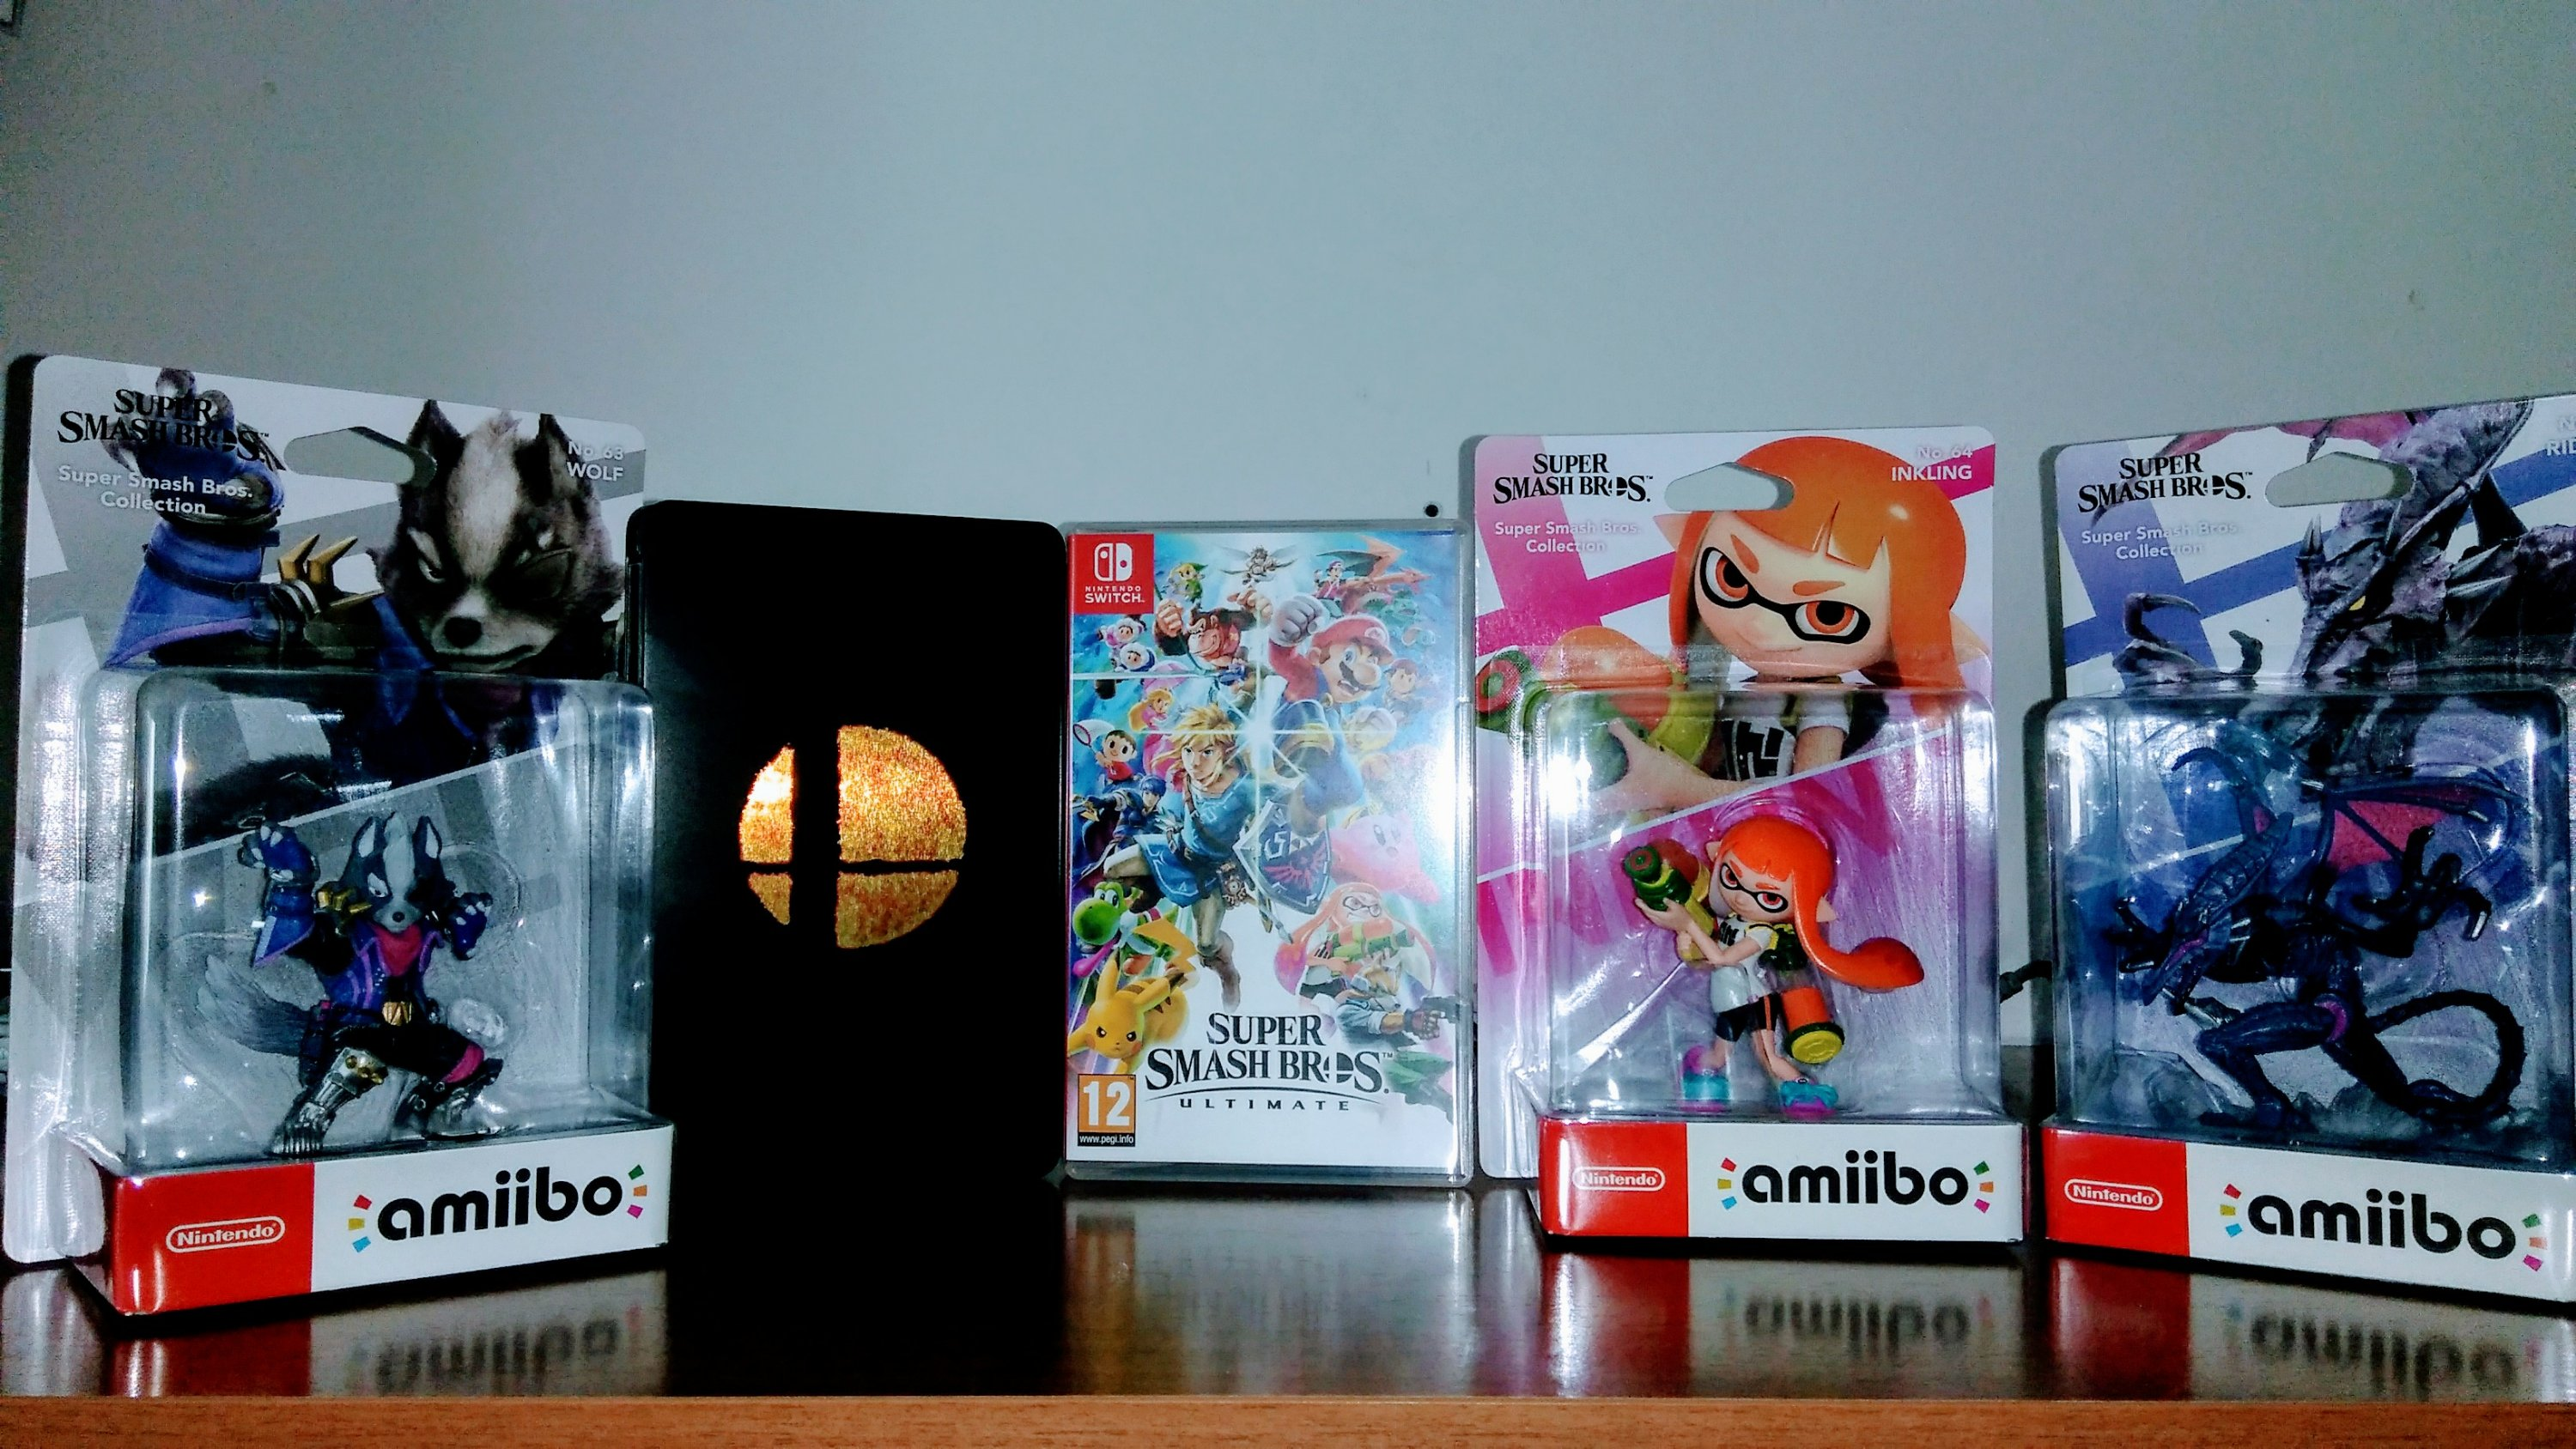 Super Smash Bros Ultimate + amiibo Unboxing